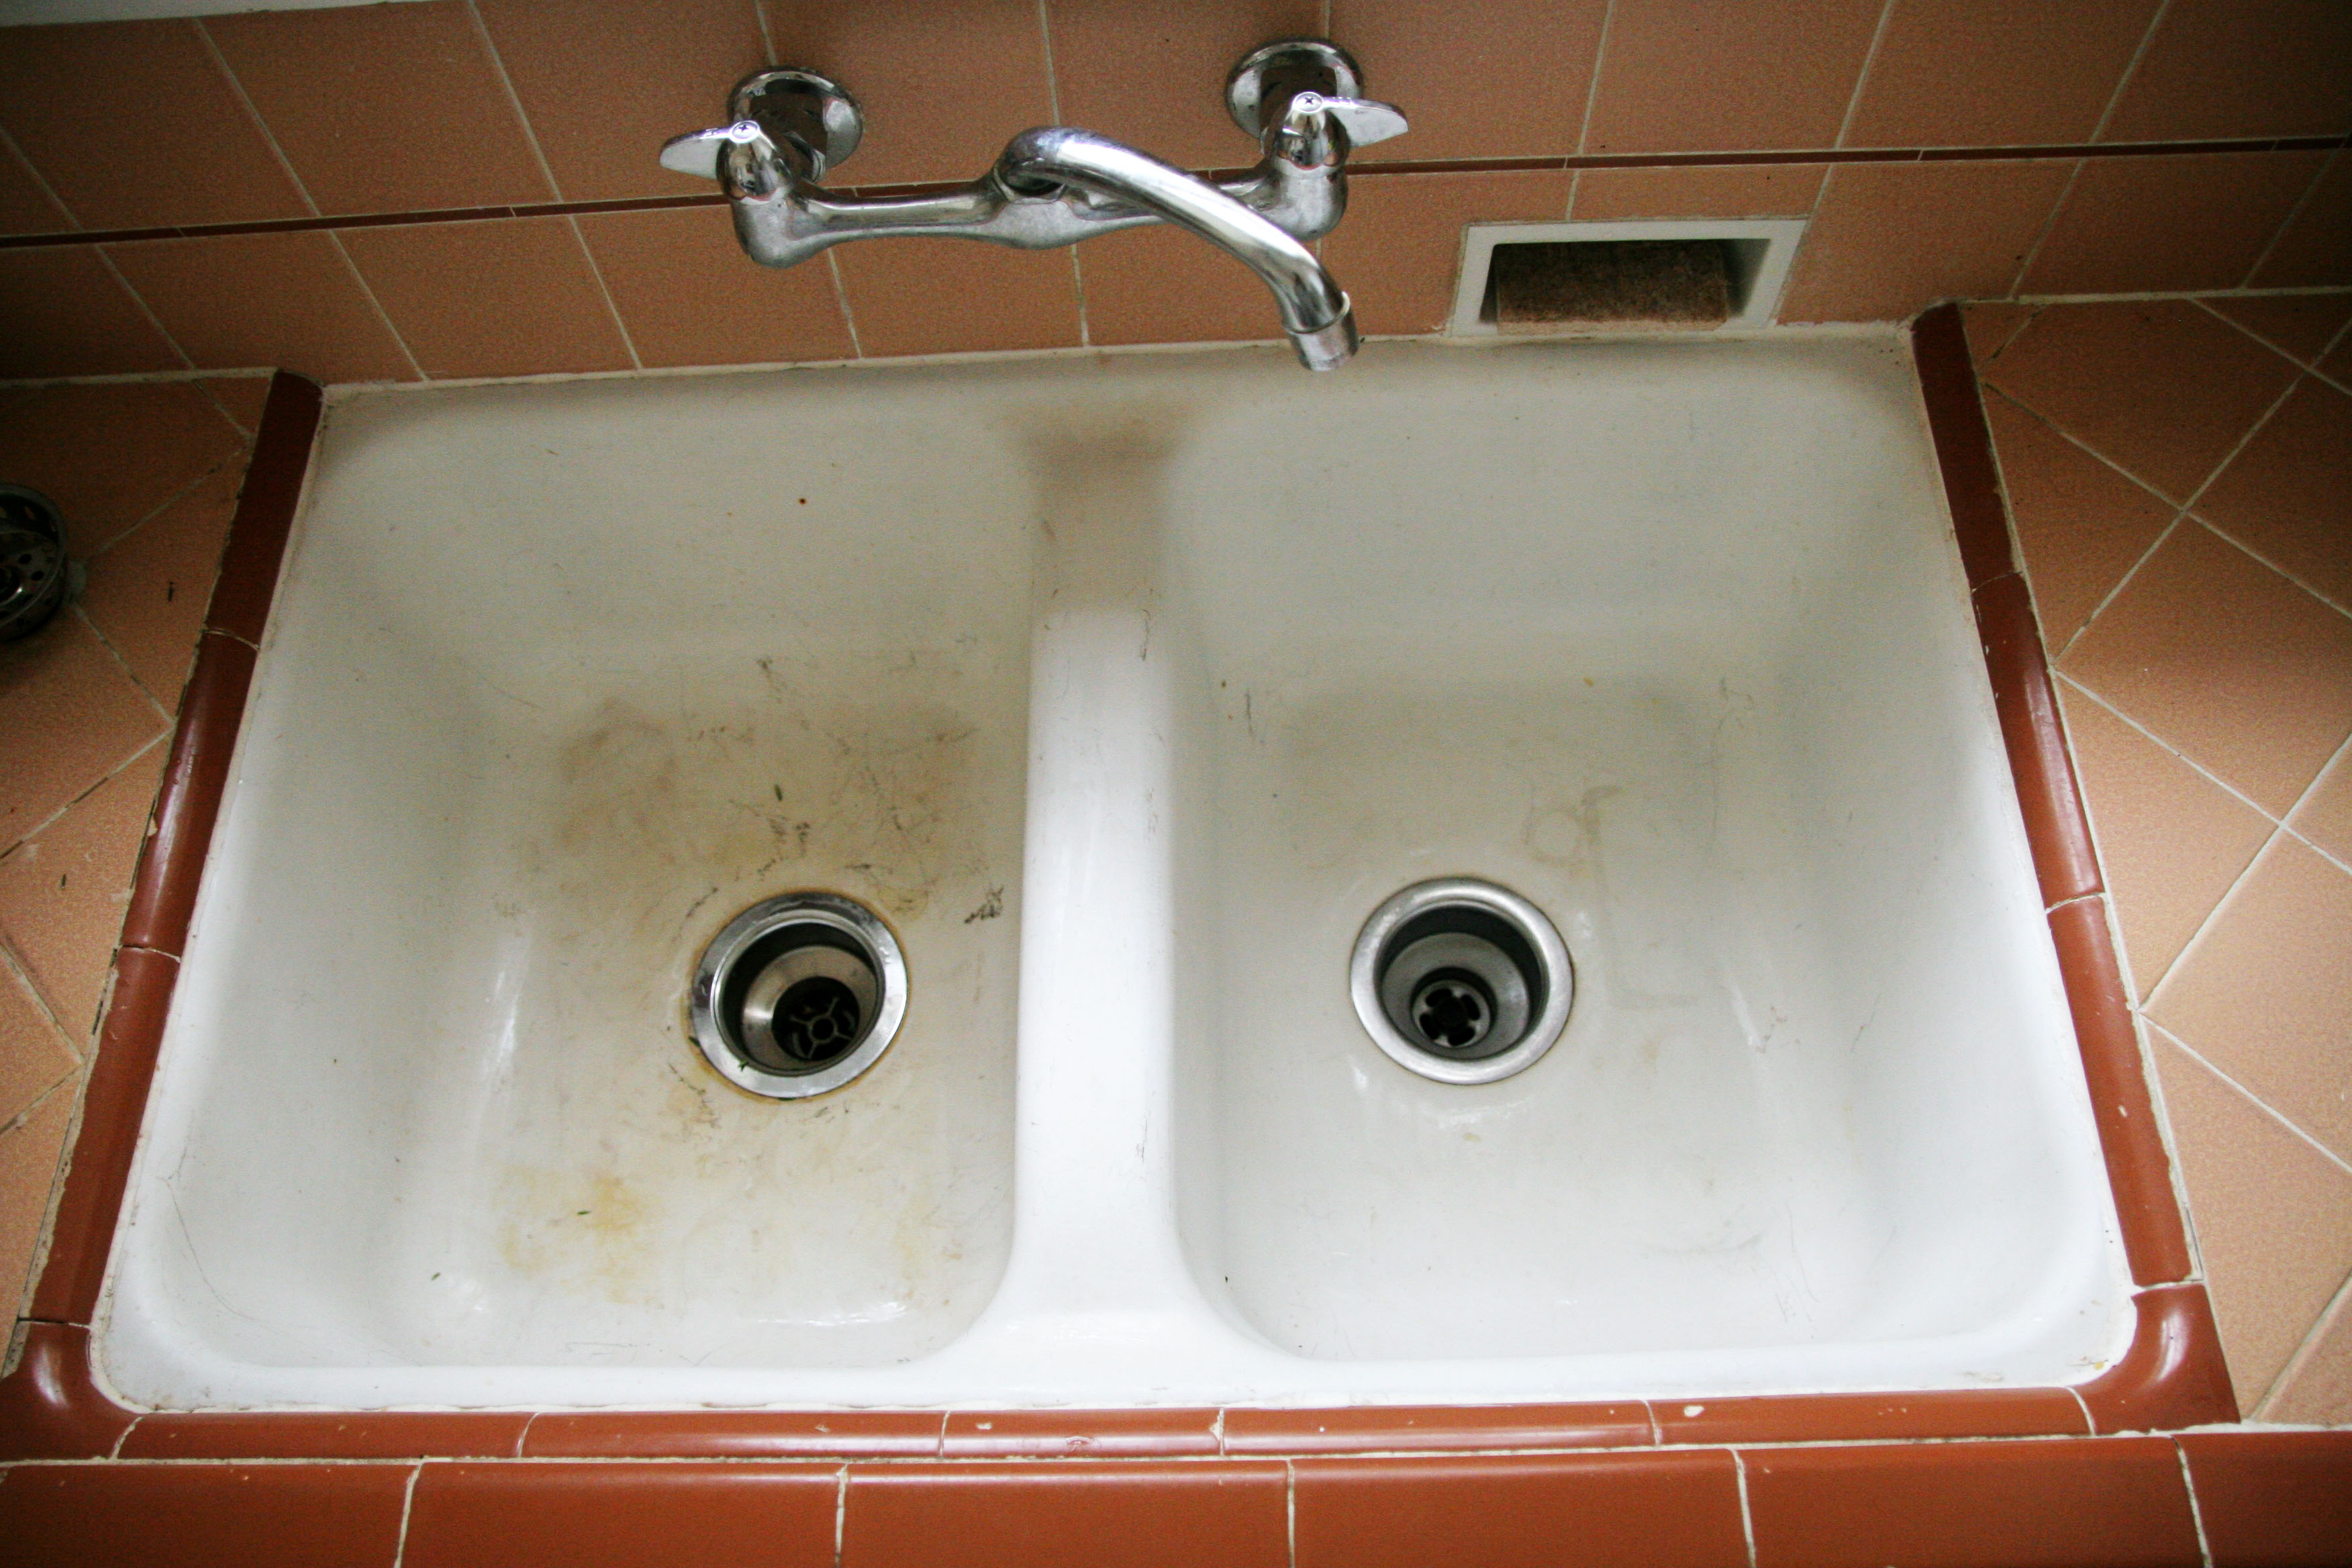 Charmant Steps To Clean An Old Porcelain Sink